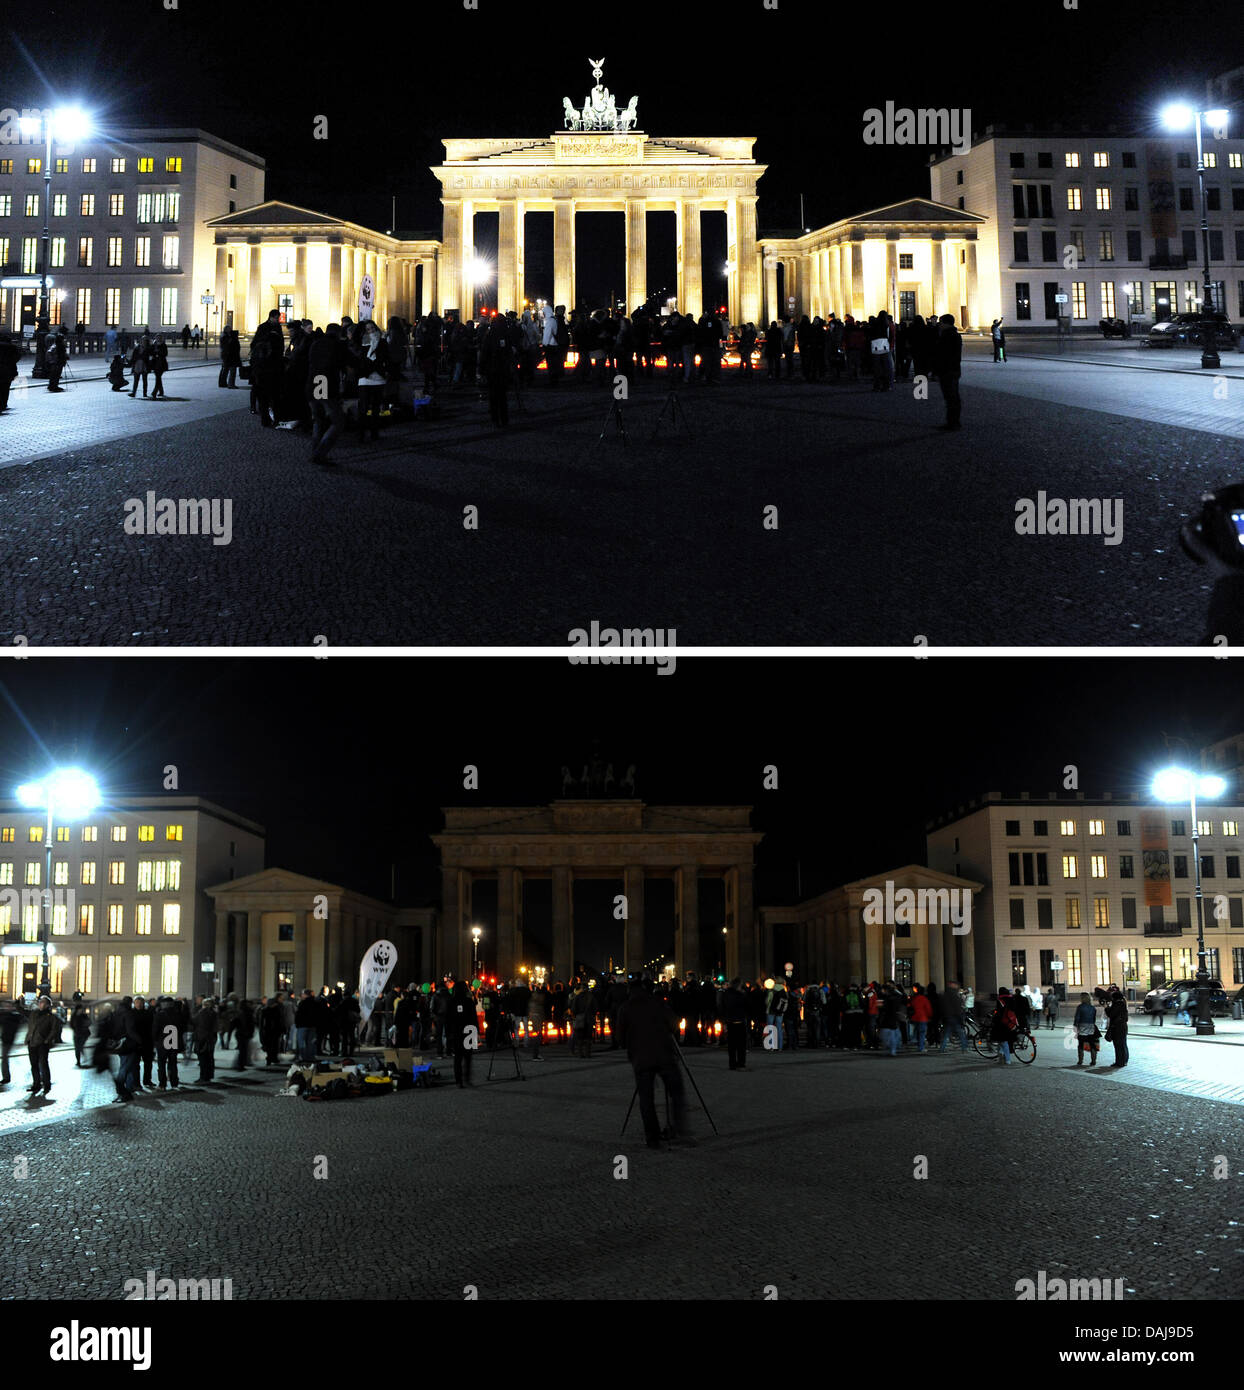 The picture collage shows the lit and unlit Brandenburg Gate during the so-called 'Earth Hour' at night - Stock Image